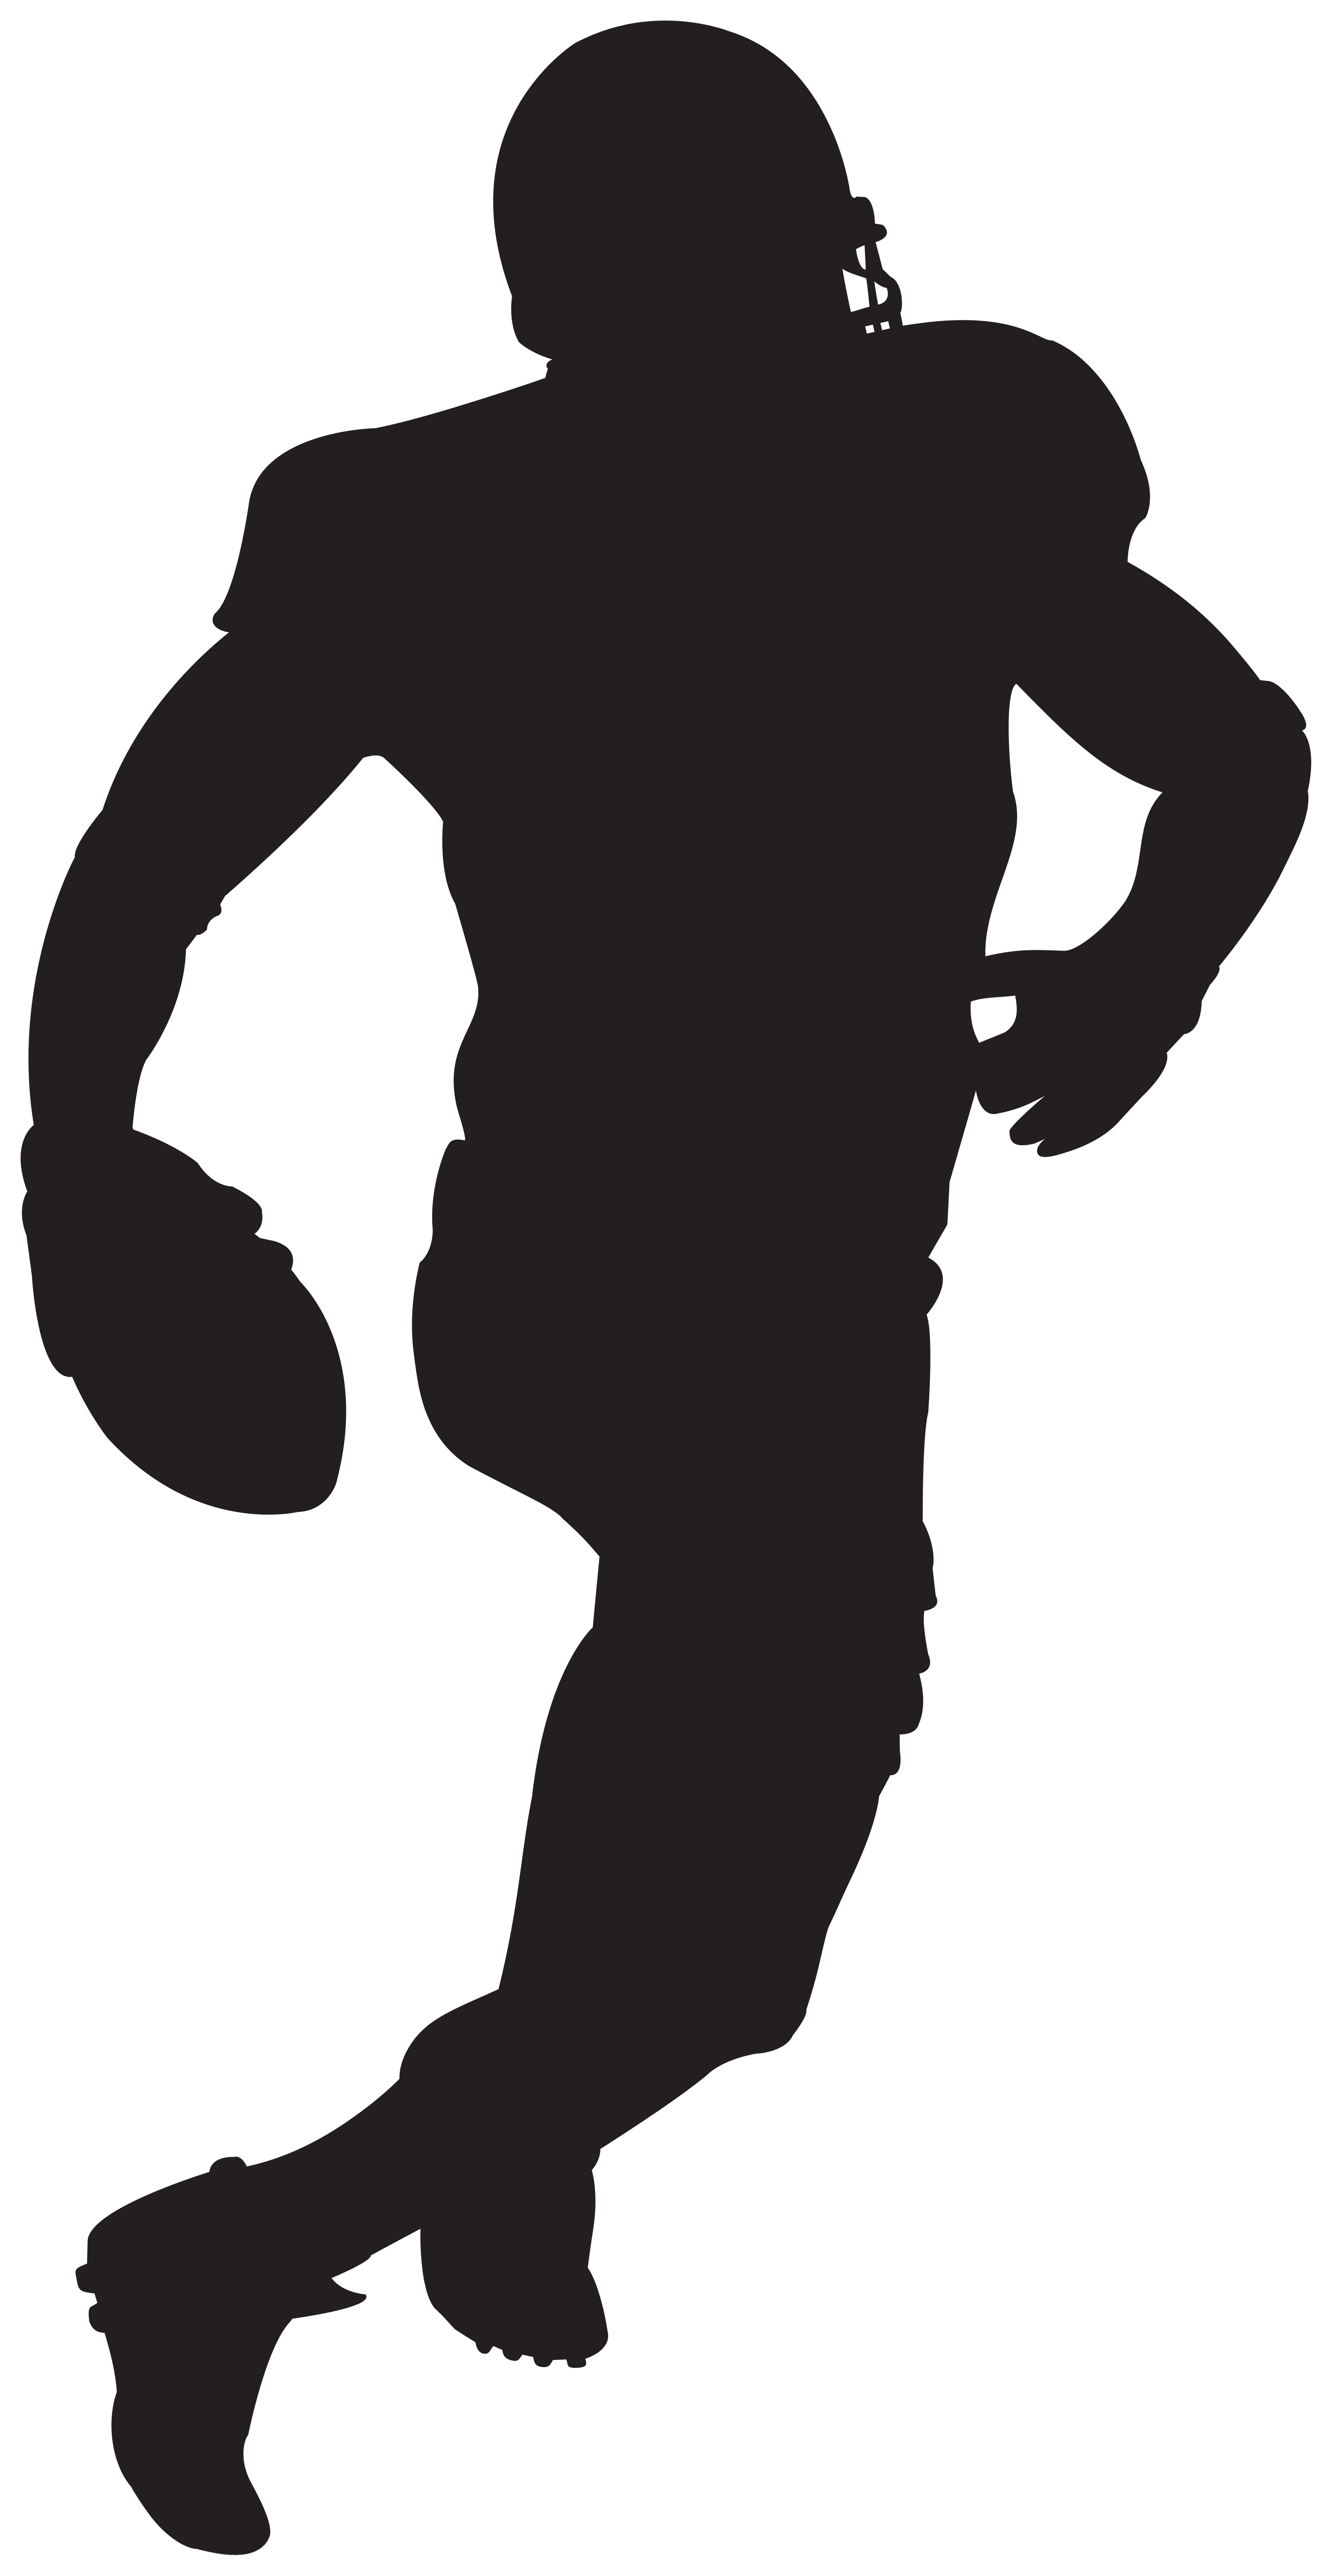 American Football Player Silhouette Png American